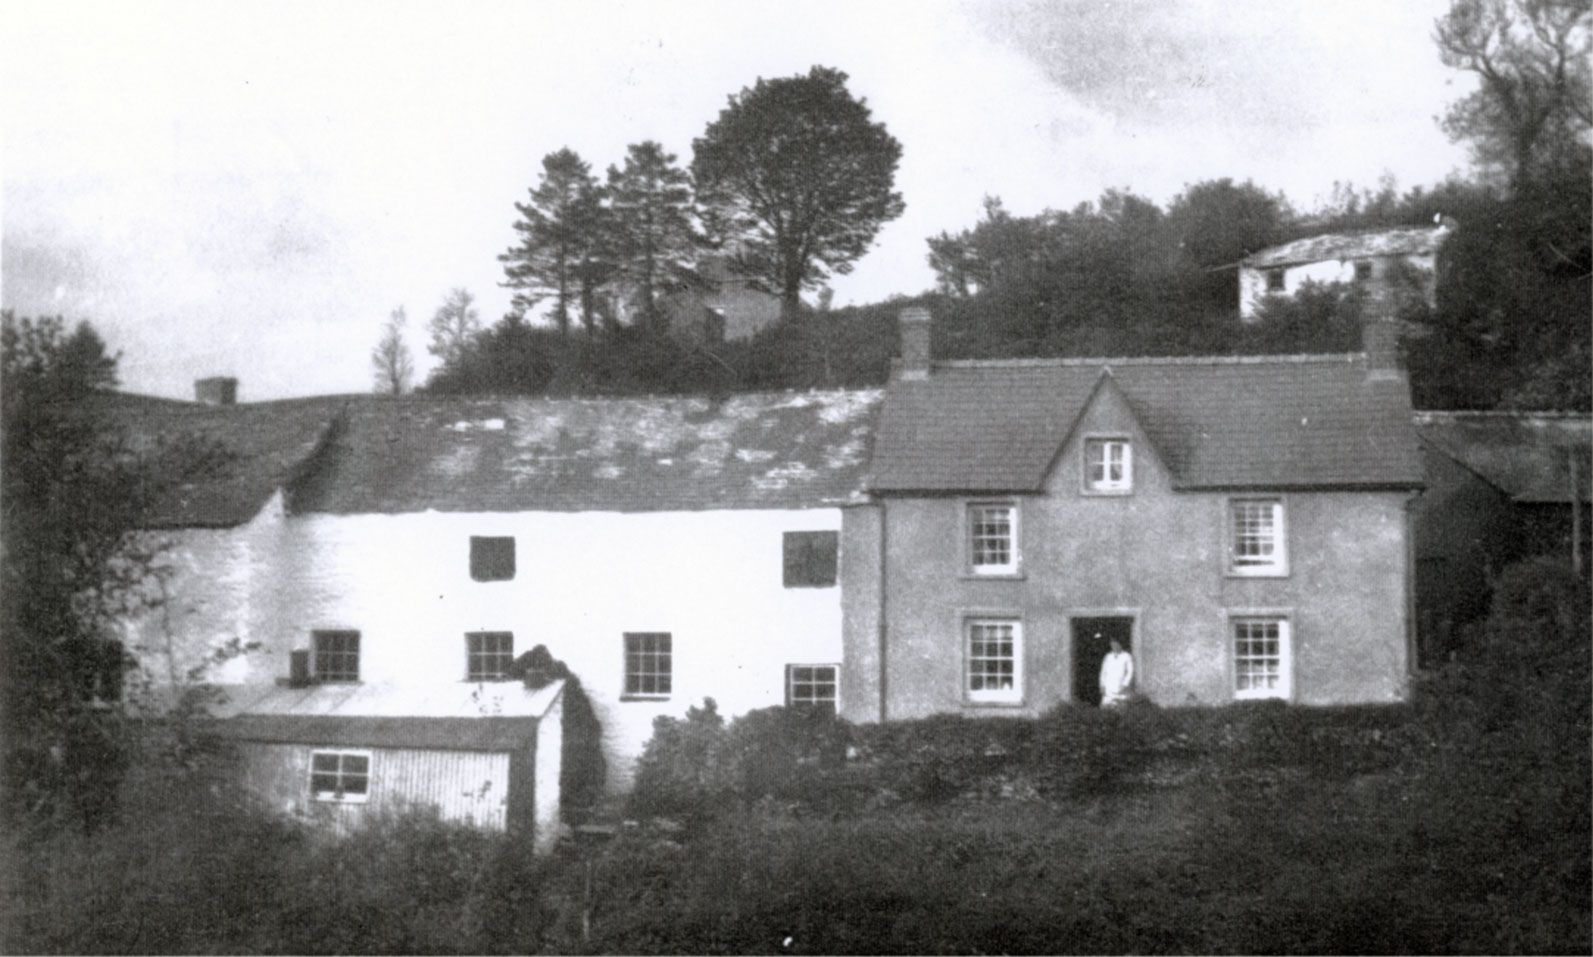 Goodwin Mill and family home Cynwyl Elfed, Carmarthenshire.